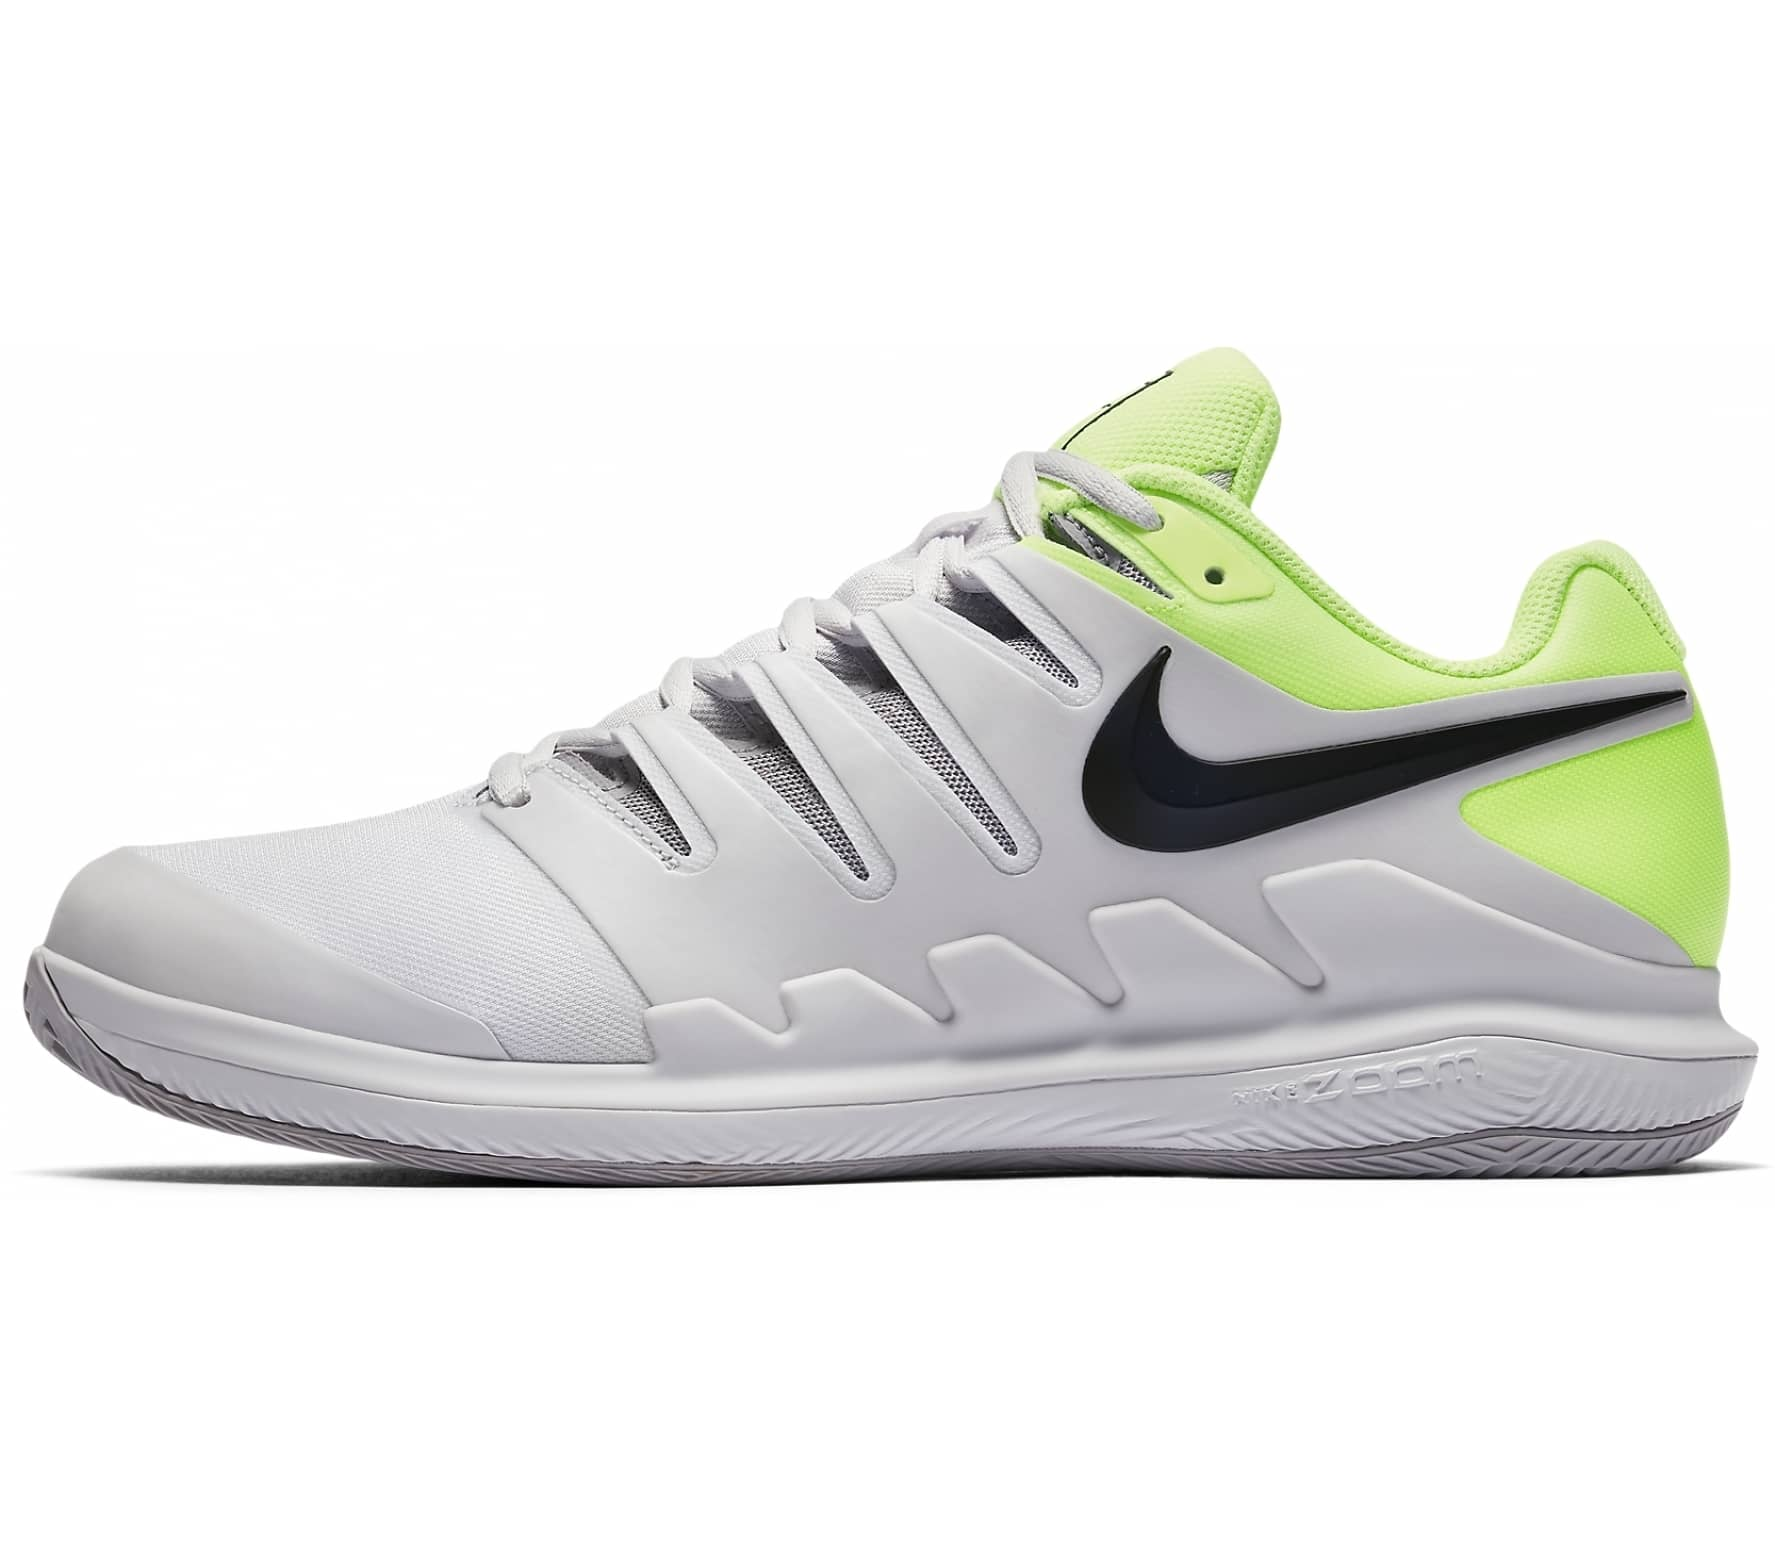 on sale fa32c a3ded Nike - Air Zoom Vapor X Clay men s tennis shoes (grey yellow)